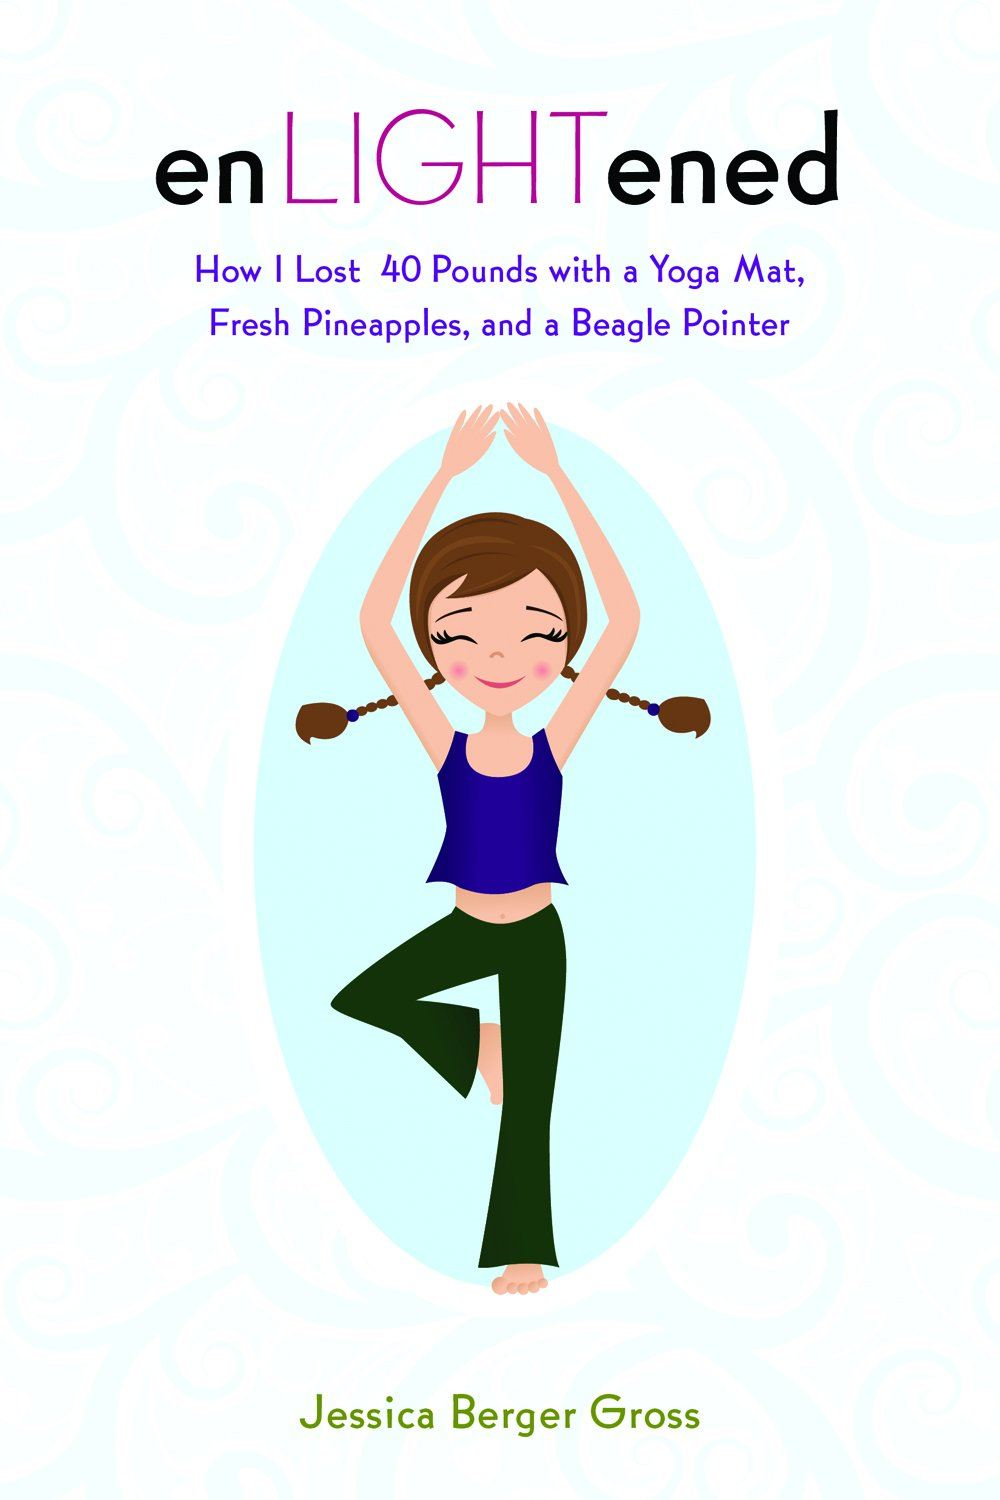 enLIGHTened: How I Lost 40 Pounds with a Yoga Mat Fresh Pineapples and a Beagle Pointer